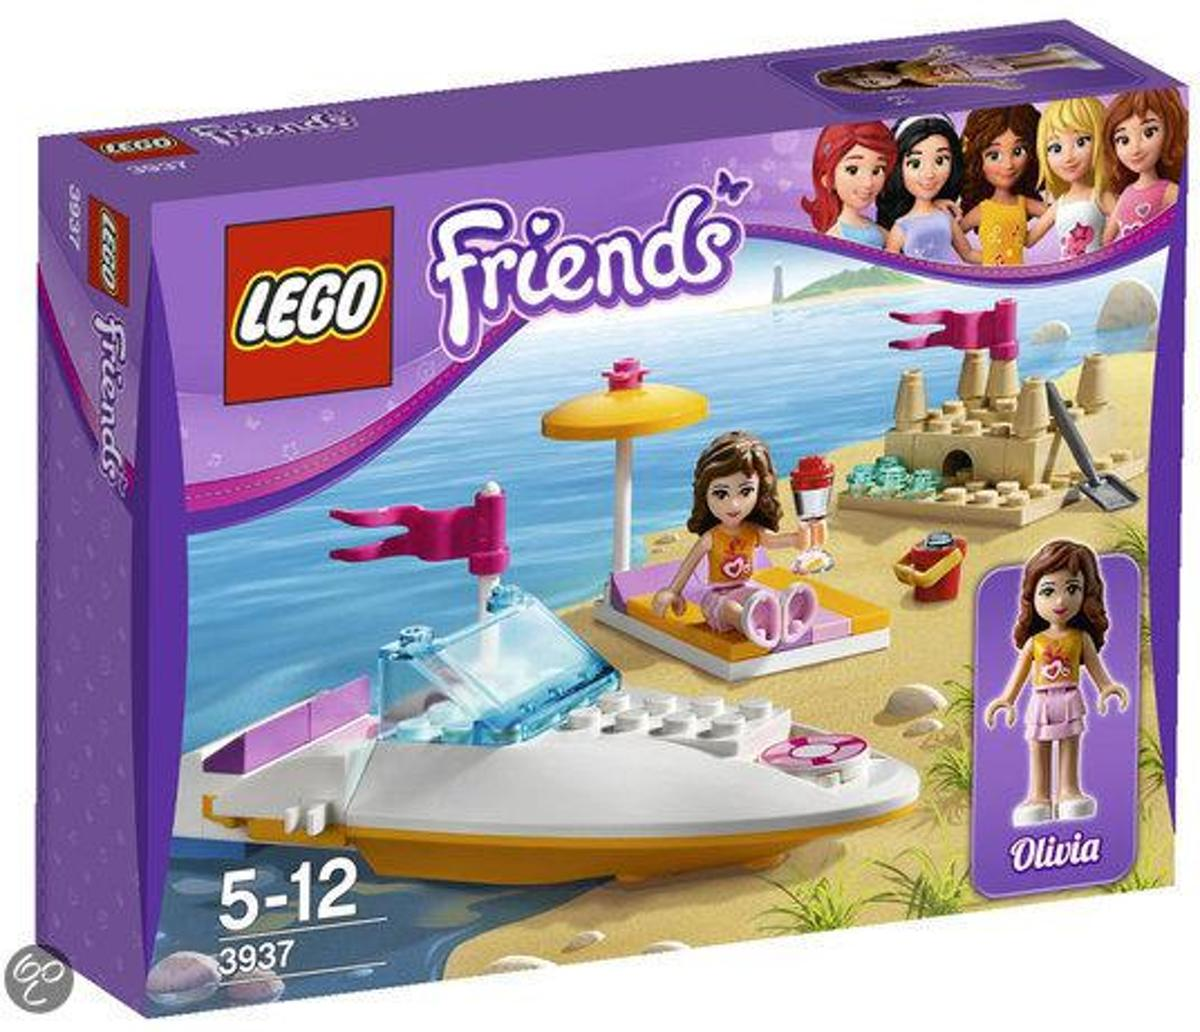 LEGO Friends Olivias Speedboot - 3937